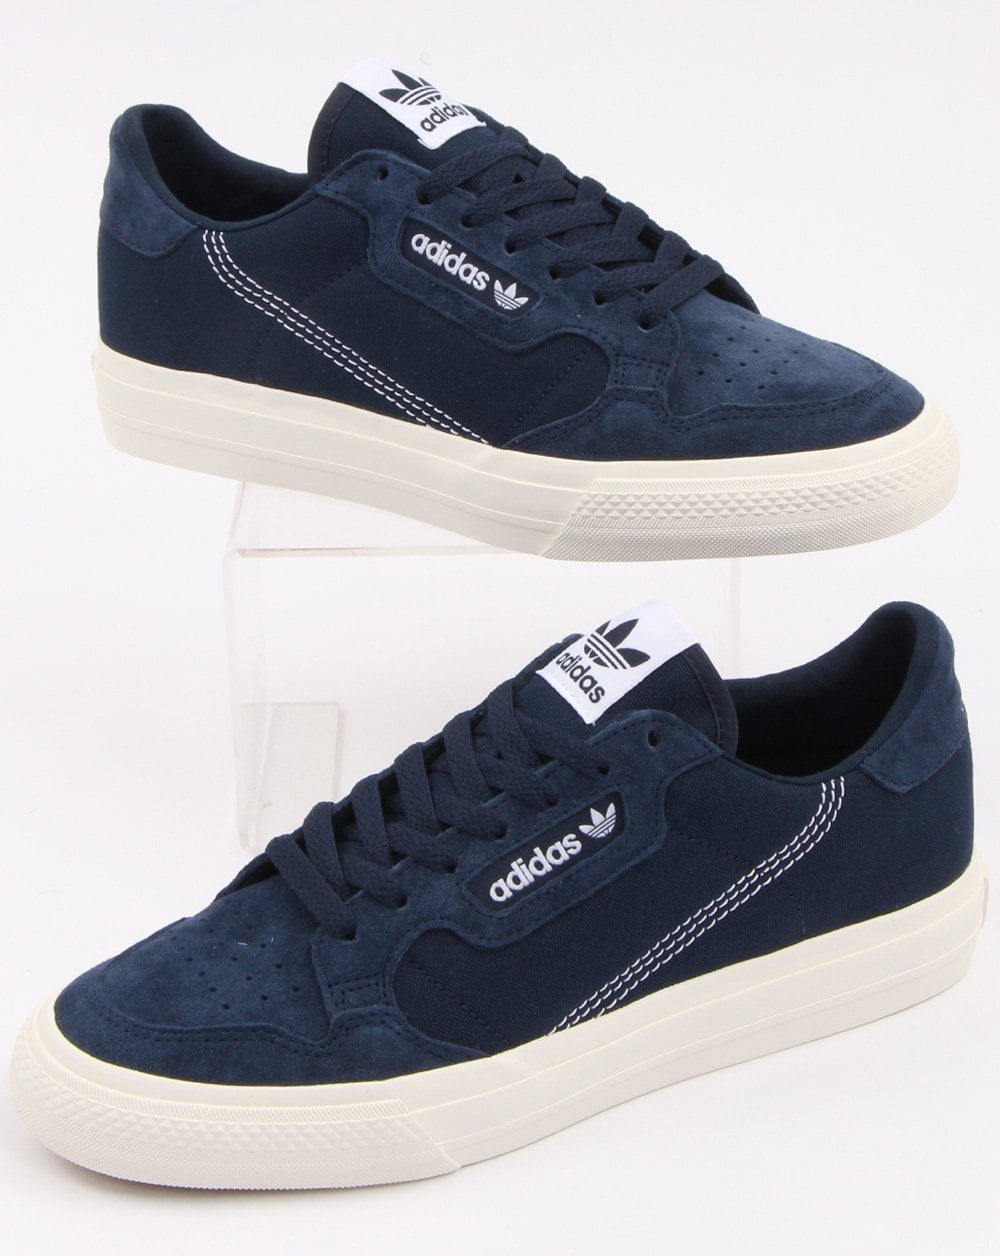 best authentic 9ea1d 32c69 adidas Trainers Adidas Continental Vulc Trainers Navy